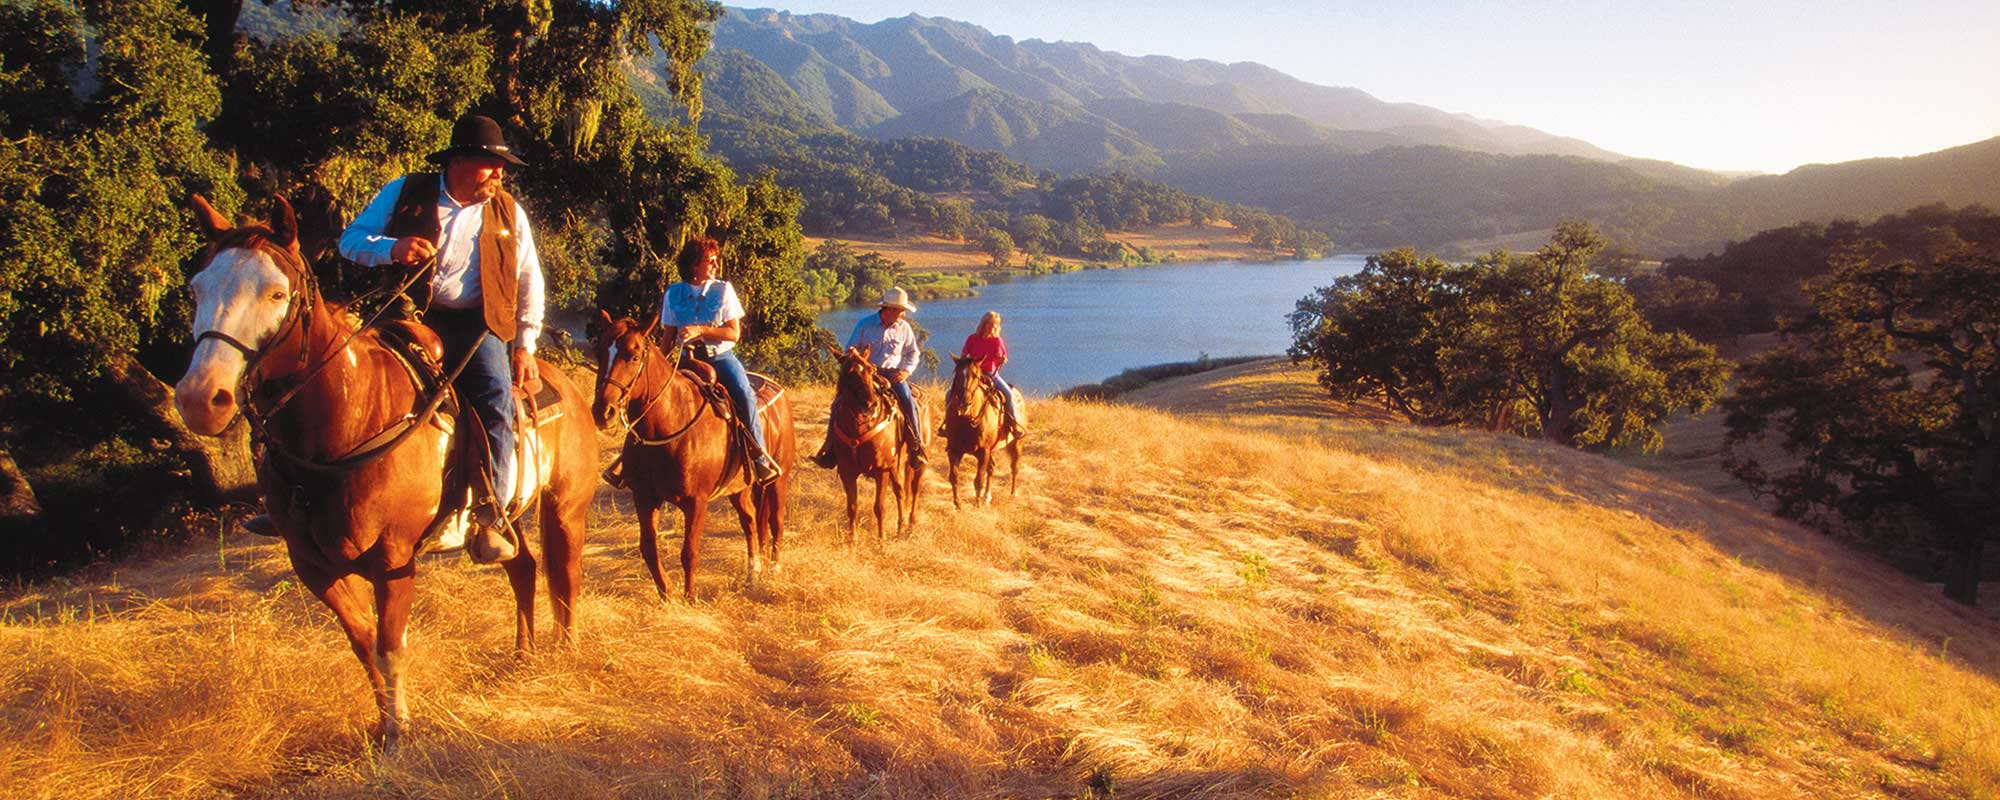 A sunset horseback ride at the Alisal Guest Ranch & Resort in Solvang, CA